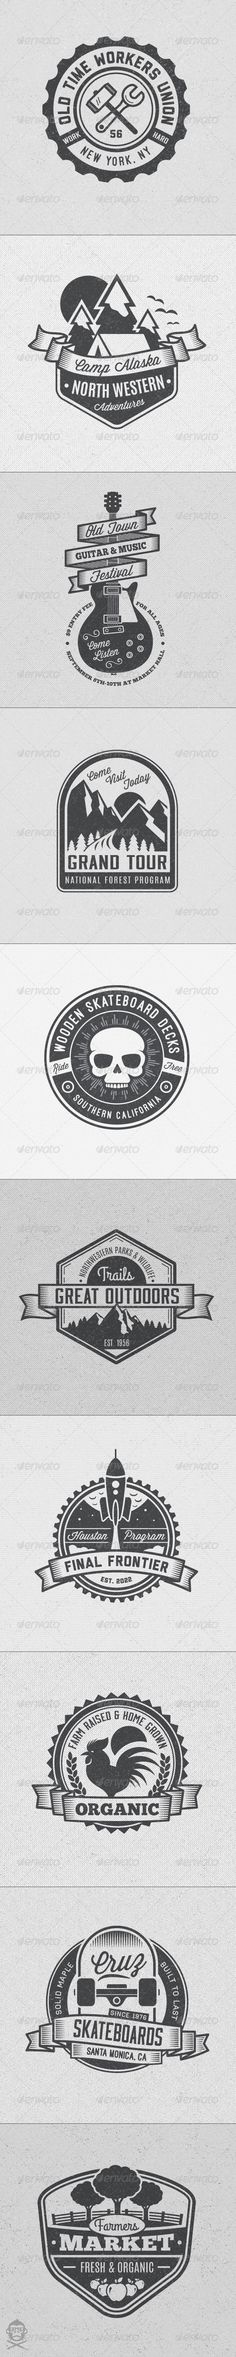 Vintage Style Badges and Logos Vol 4 - Badges & Stickers Web Elements. Logo Illustration Designs,